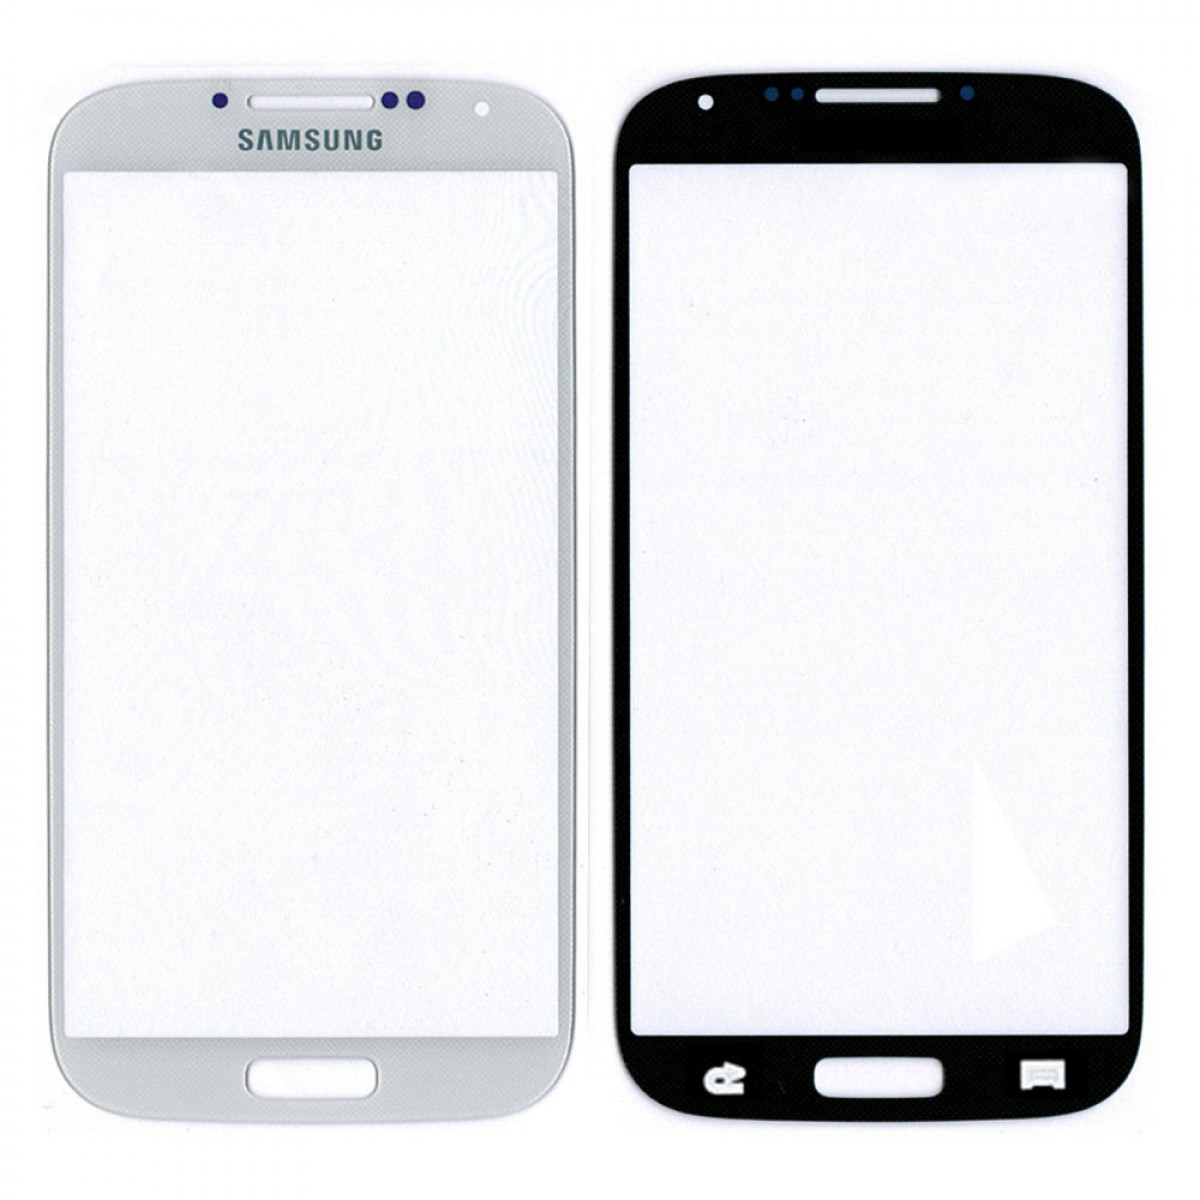 samsung galaxy s4 vitre tactile seule blanc gt i9505 et. Black Bedroom Furniture Sets. Home Design Ideas